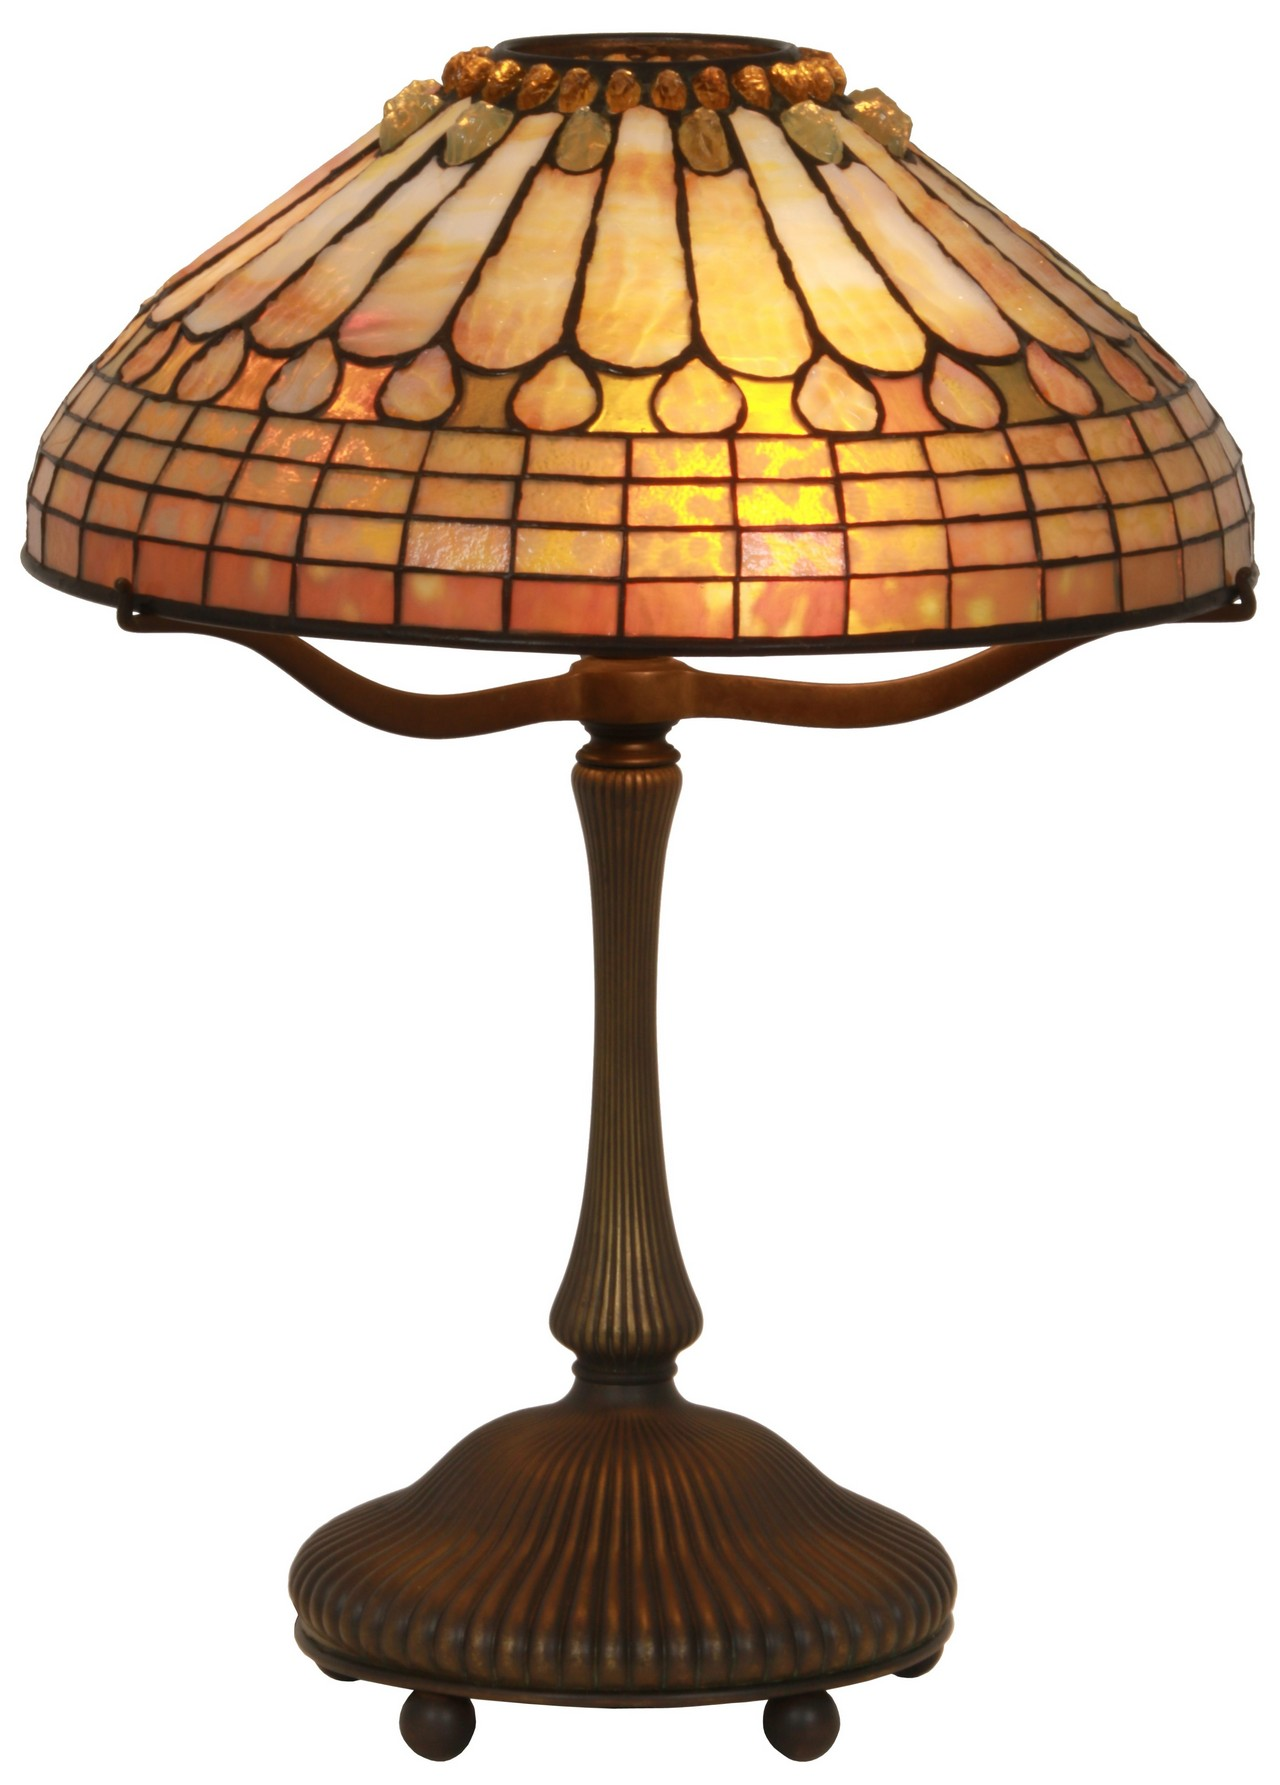 16 in. Tiffany Jeweled Feather Table Lamp